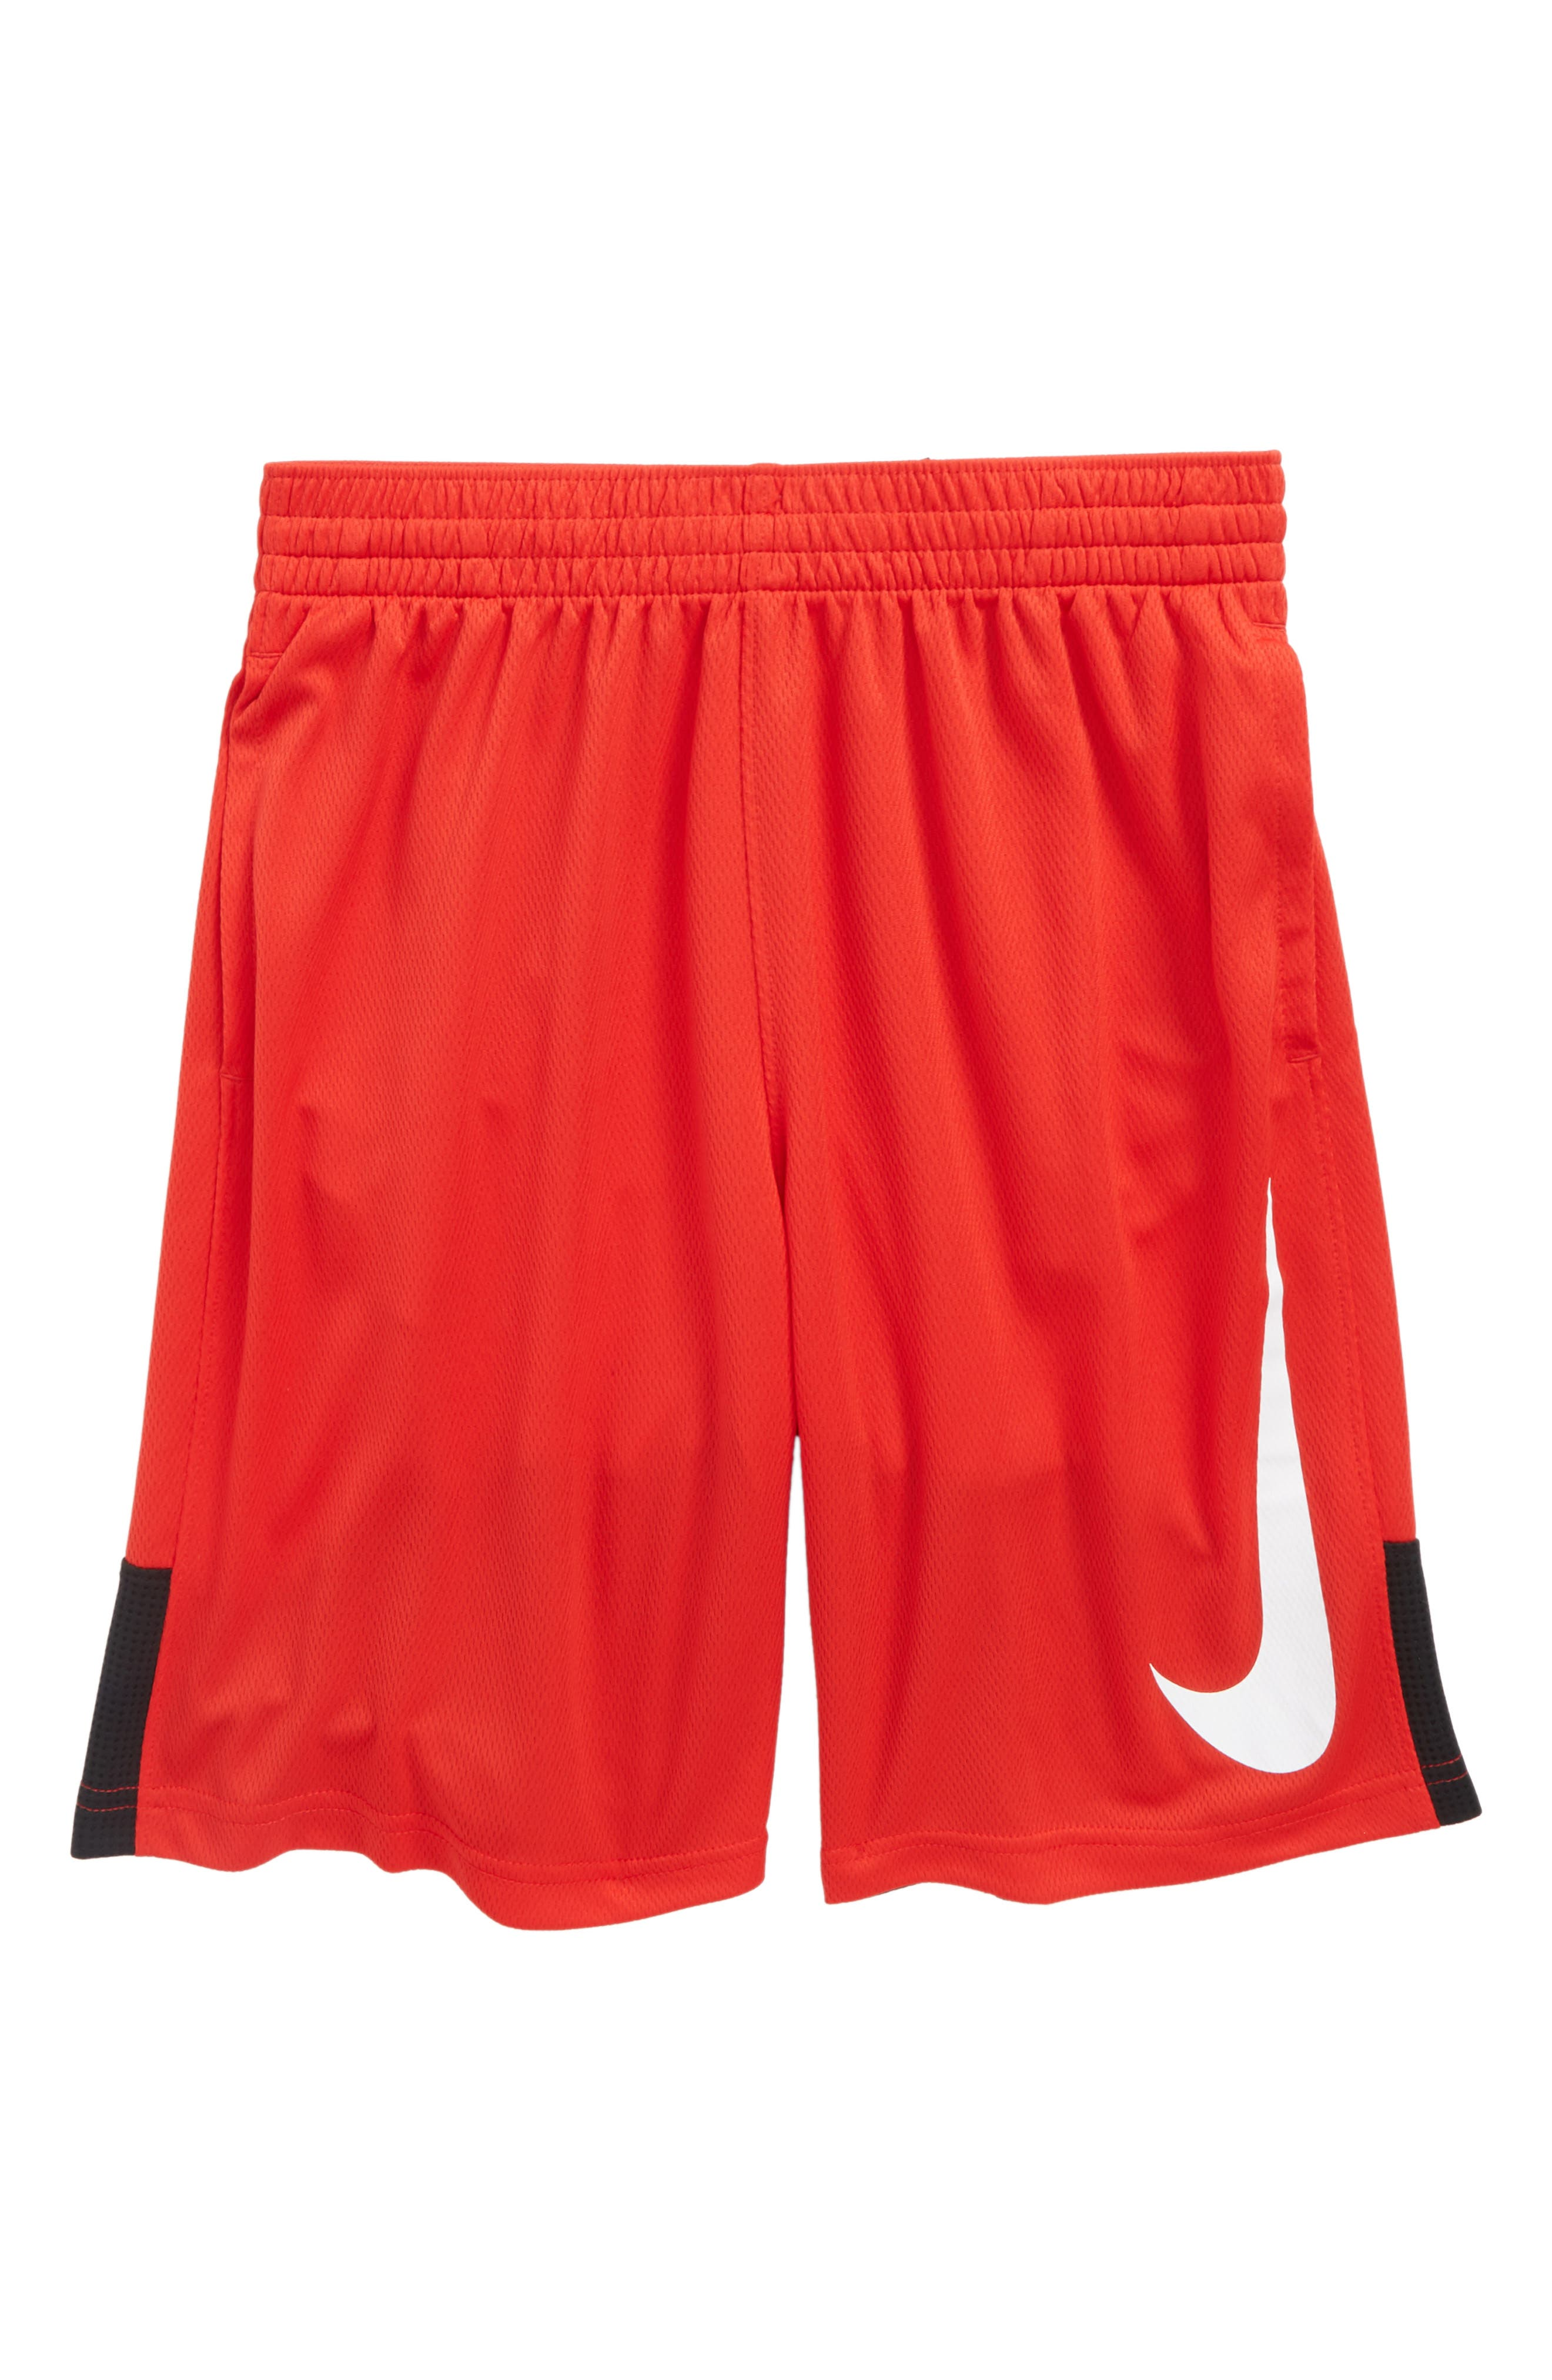 Dry Shorts,                         Main,                         color, University Red/ Black